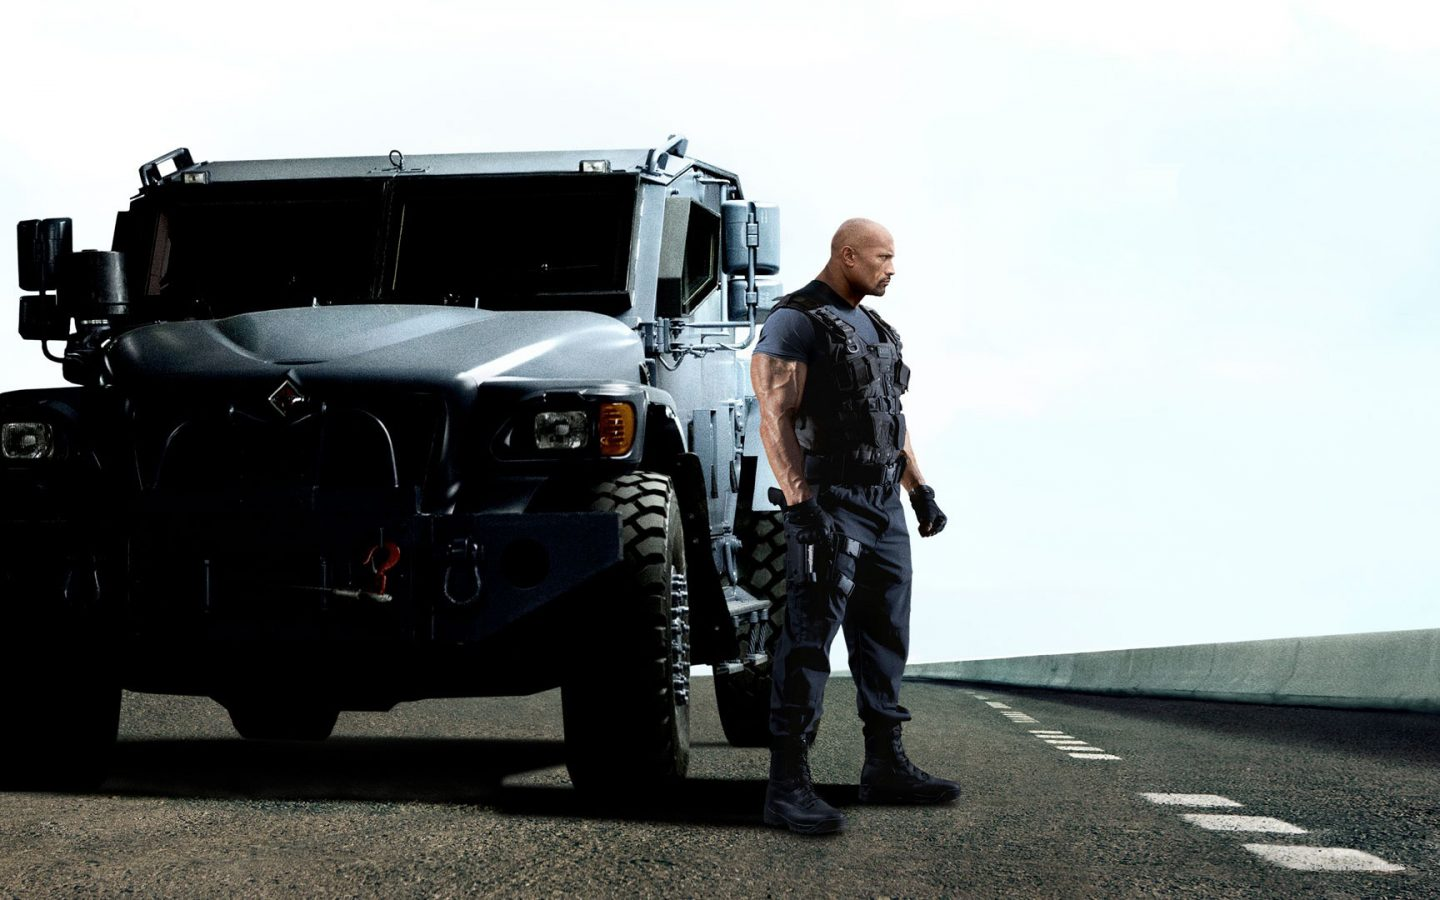 Motivational Wallpaper Cute Fast Amp Furious 6 2013 Dwayne Johnson Hd Wallpaper